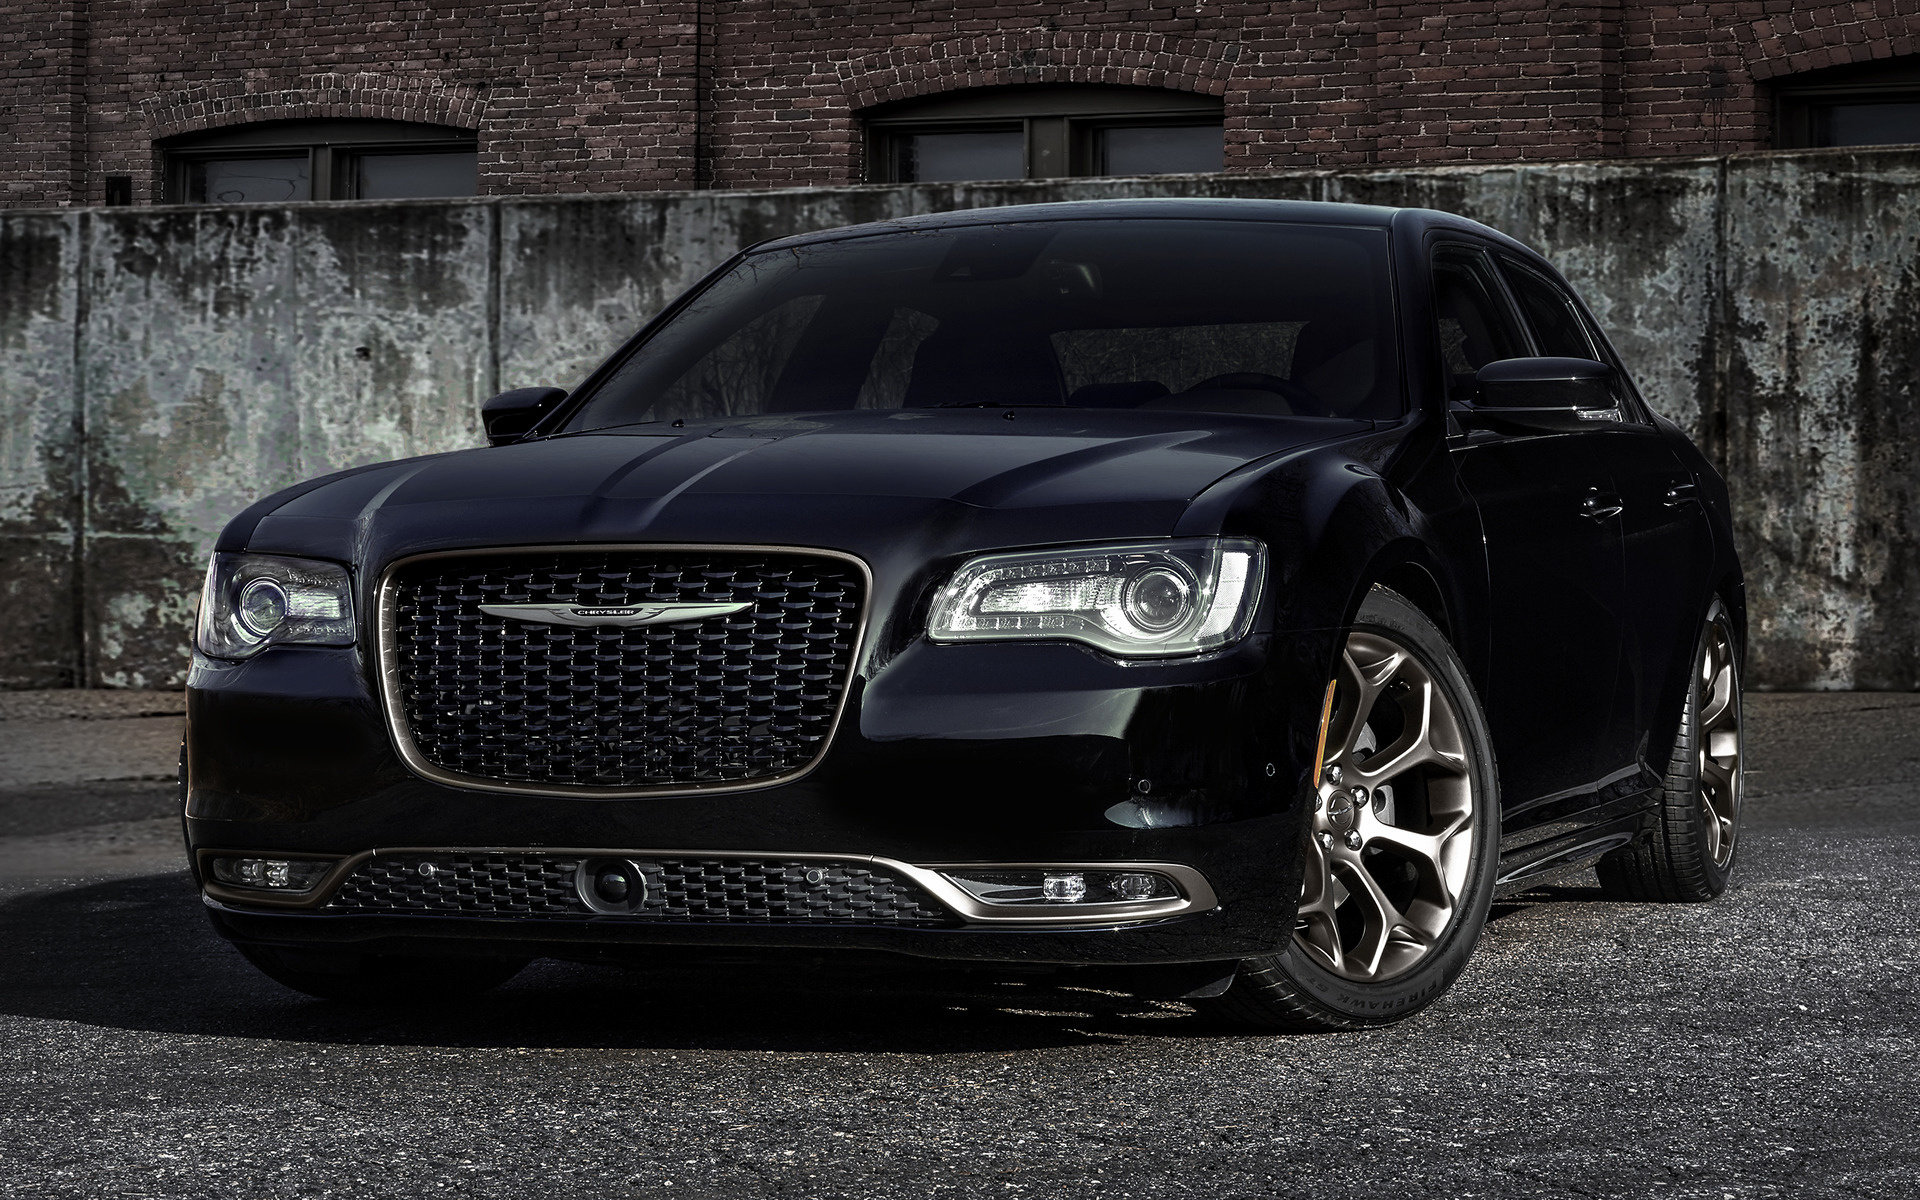 Chrysler 300 S >> 2016 Chrysler 300S Alloy Edition - Wallpapers and HD ...